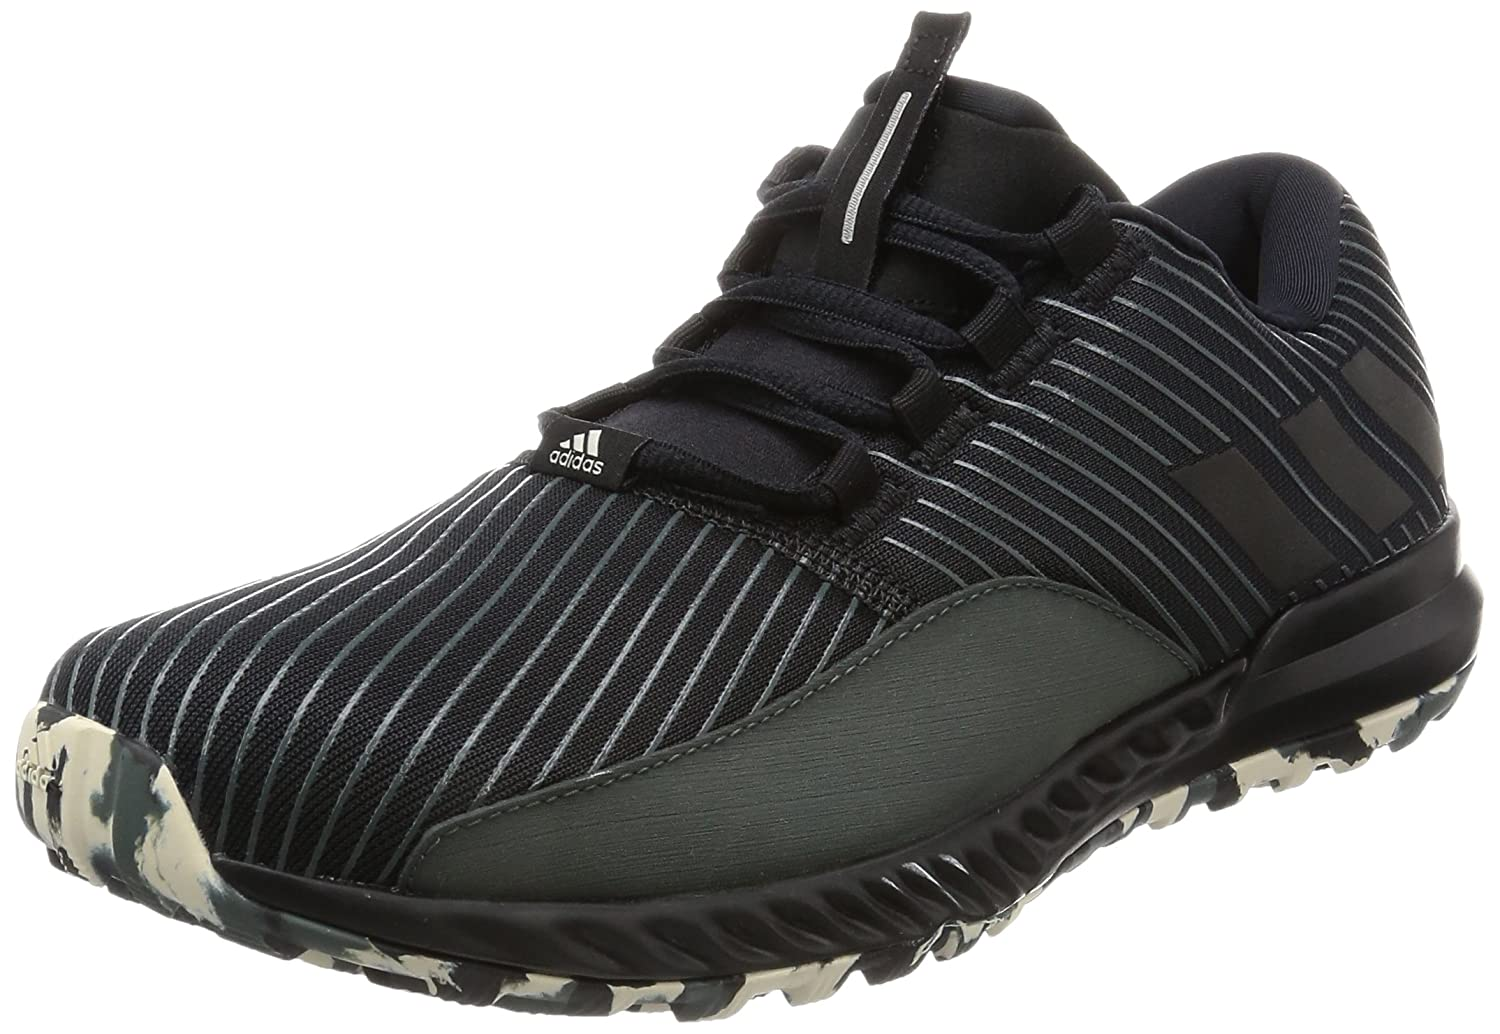 detailed look bdd68 83ff9 adidas Mens Crazytrain Pro Trf M Fitness Shoes, Black (negbashieuti), 15  UK (50 23 EU) adidas Amazon.co.uk Sports  Outdoors